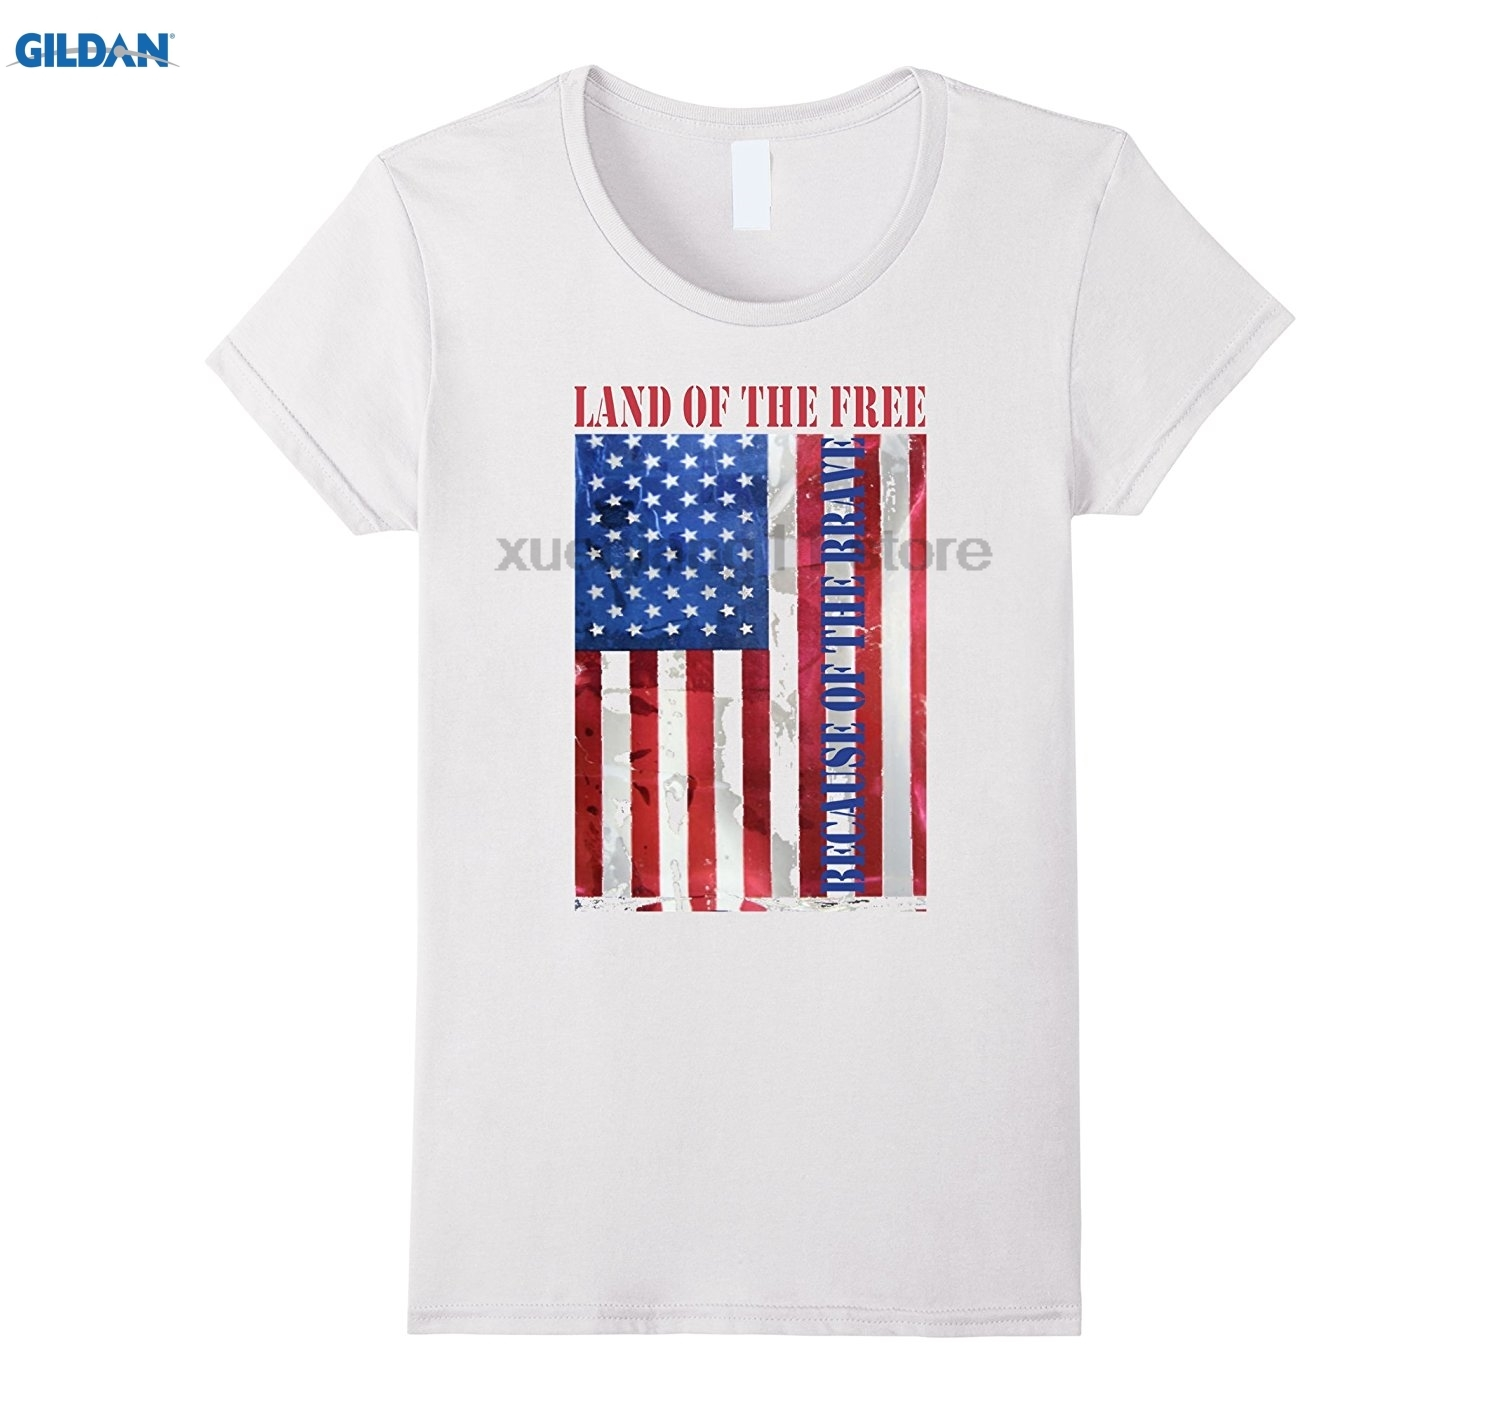 GILDAN Memorial Day land of the free because of the brave shirt